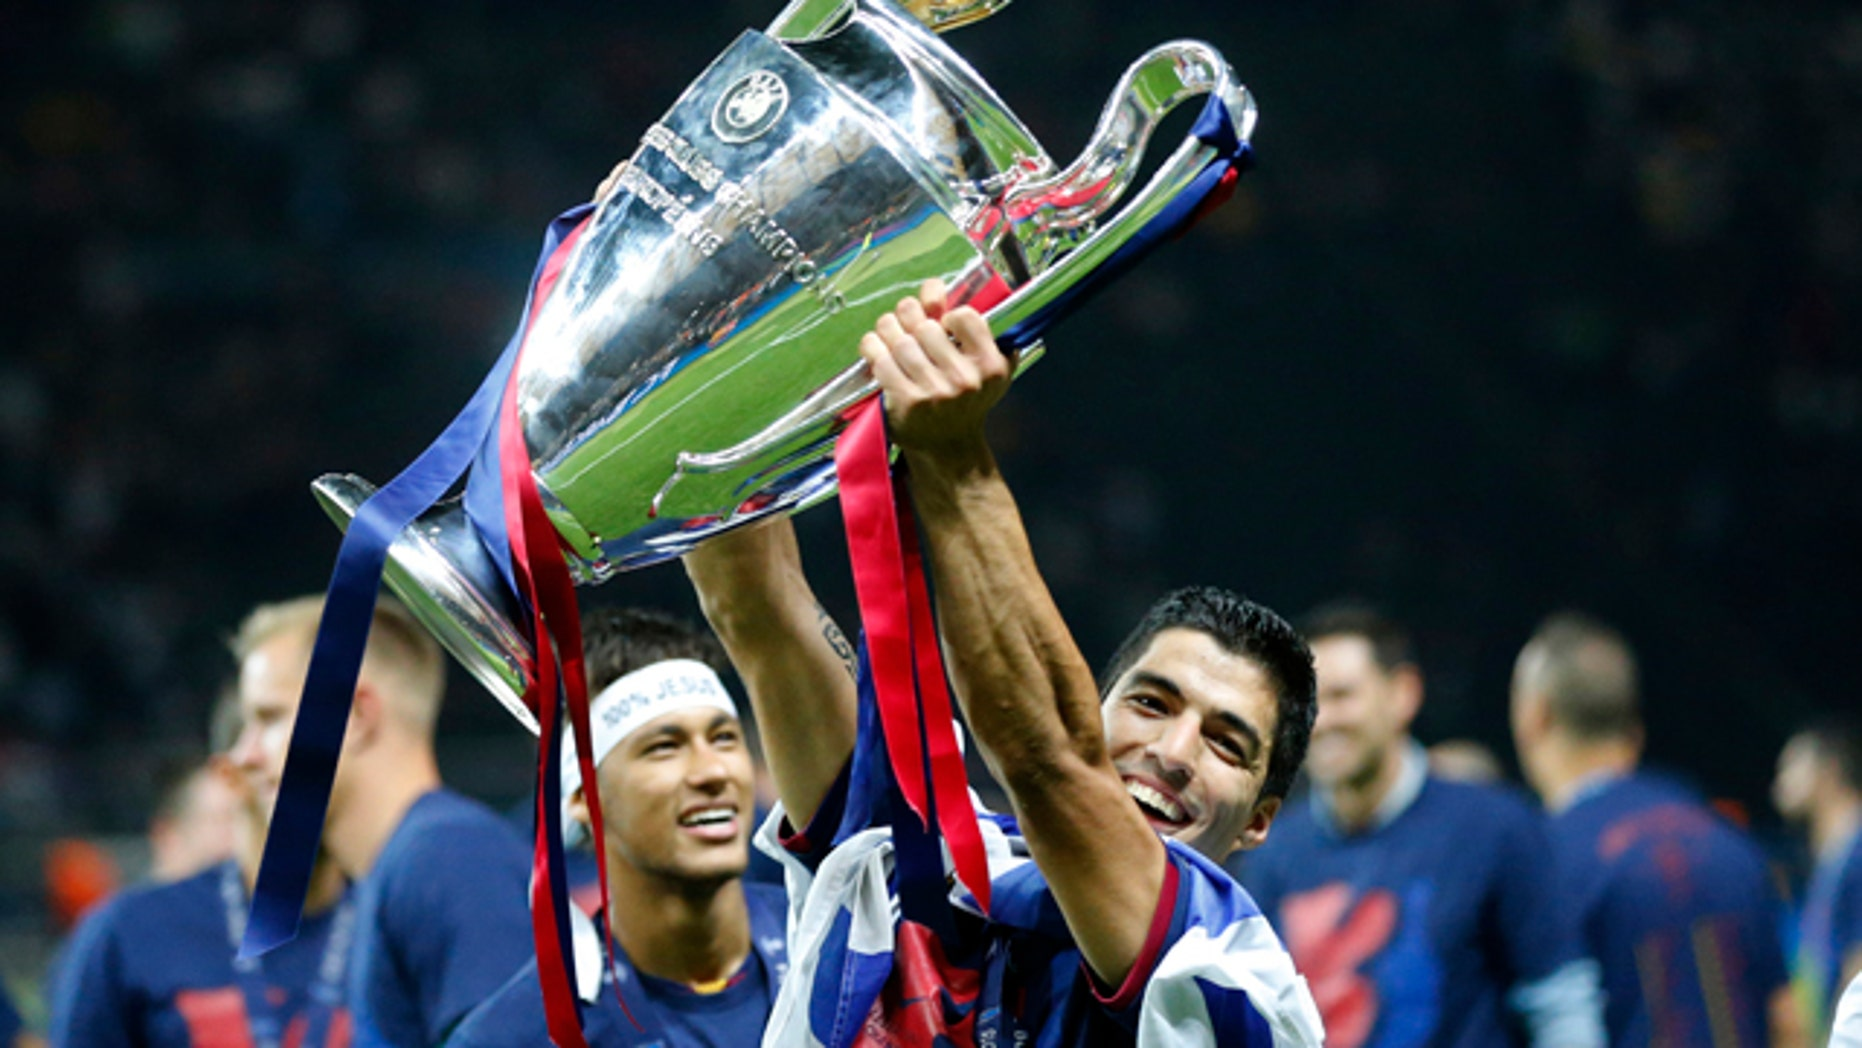 Barcelona's Luis Suarez and Neymar celebrates with the trophy after after the Champions League final soccer match between Juventus Turin and FC Barcelona at the Olympic stadium in Berlin Saturday, June 6, 2015. Barcelona won the match 3-1.  (AP Photo/Frank Augstein)